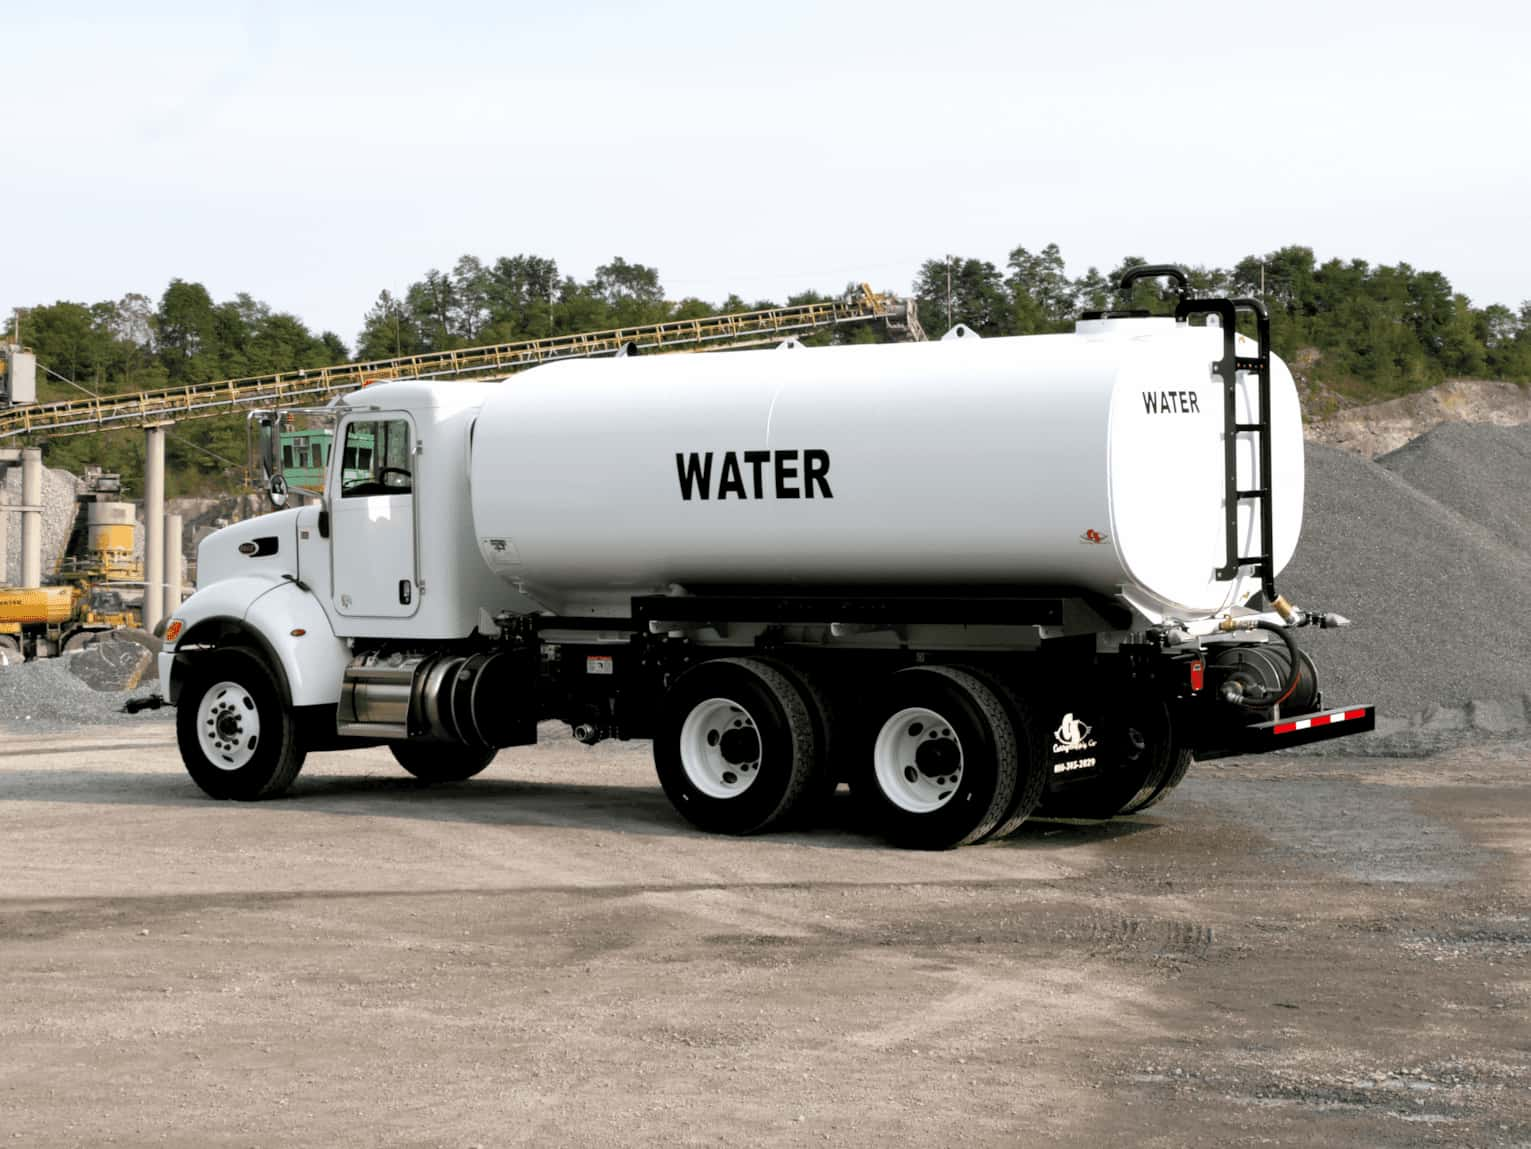 How do you operate a water truck safely